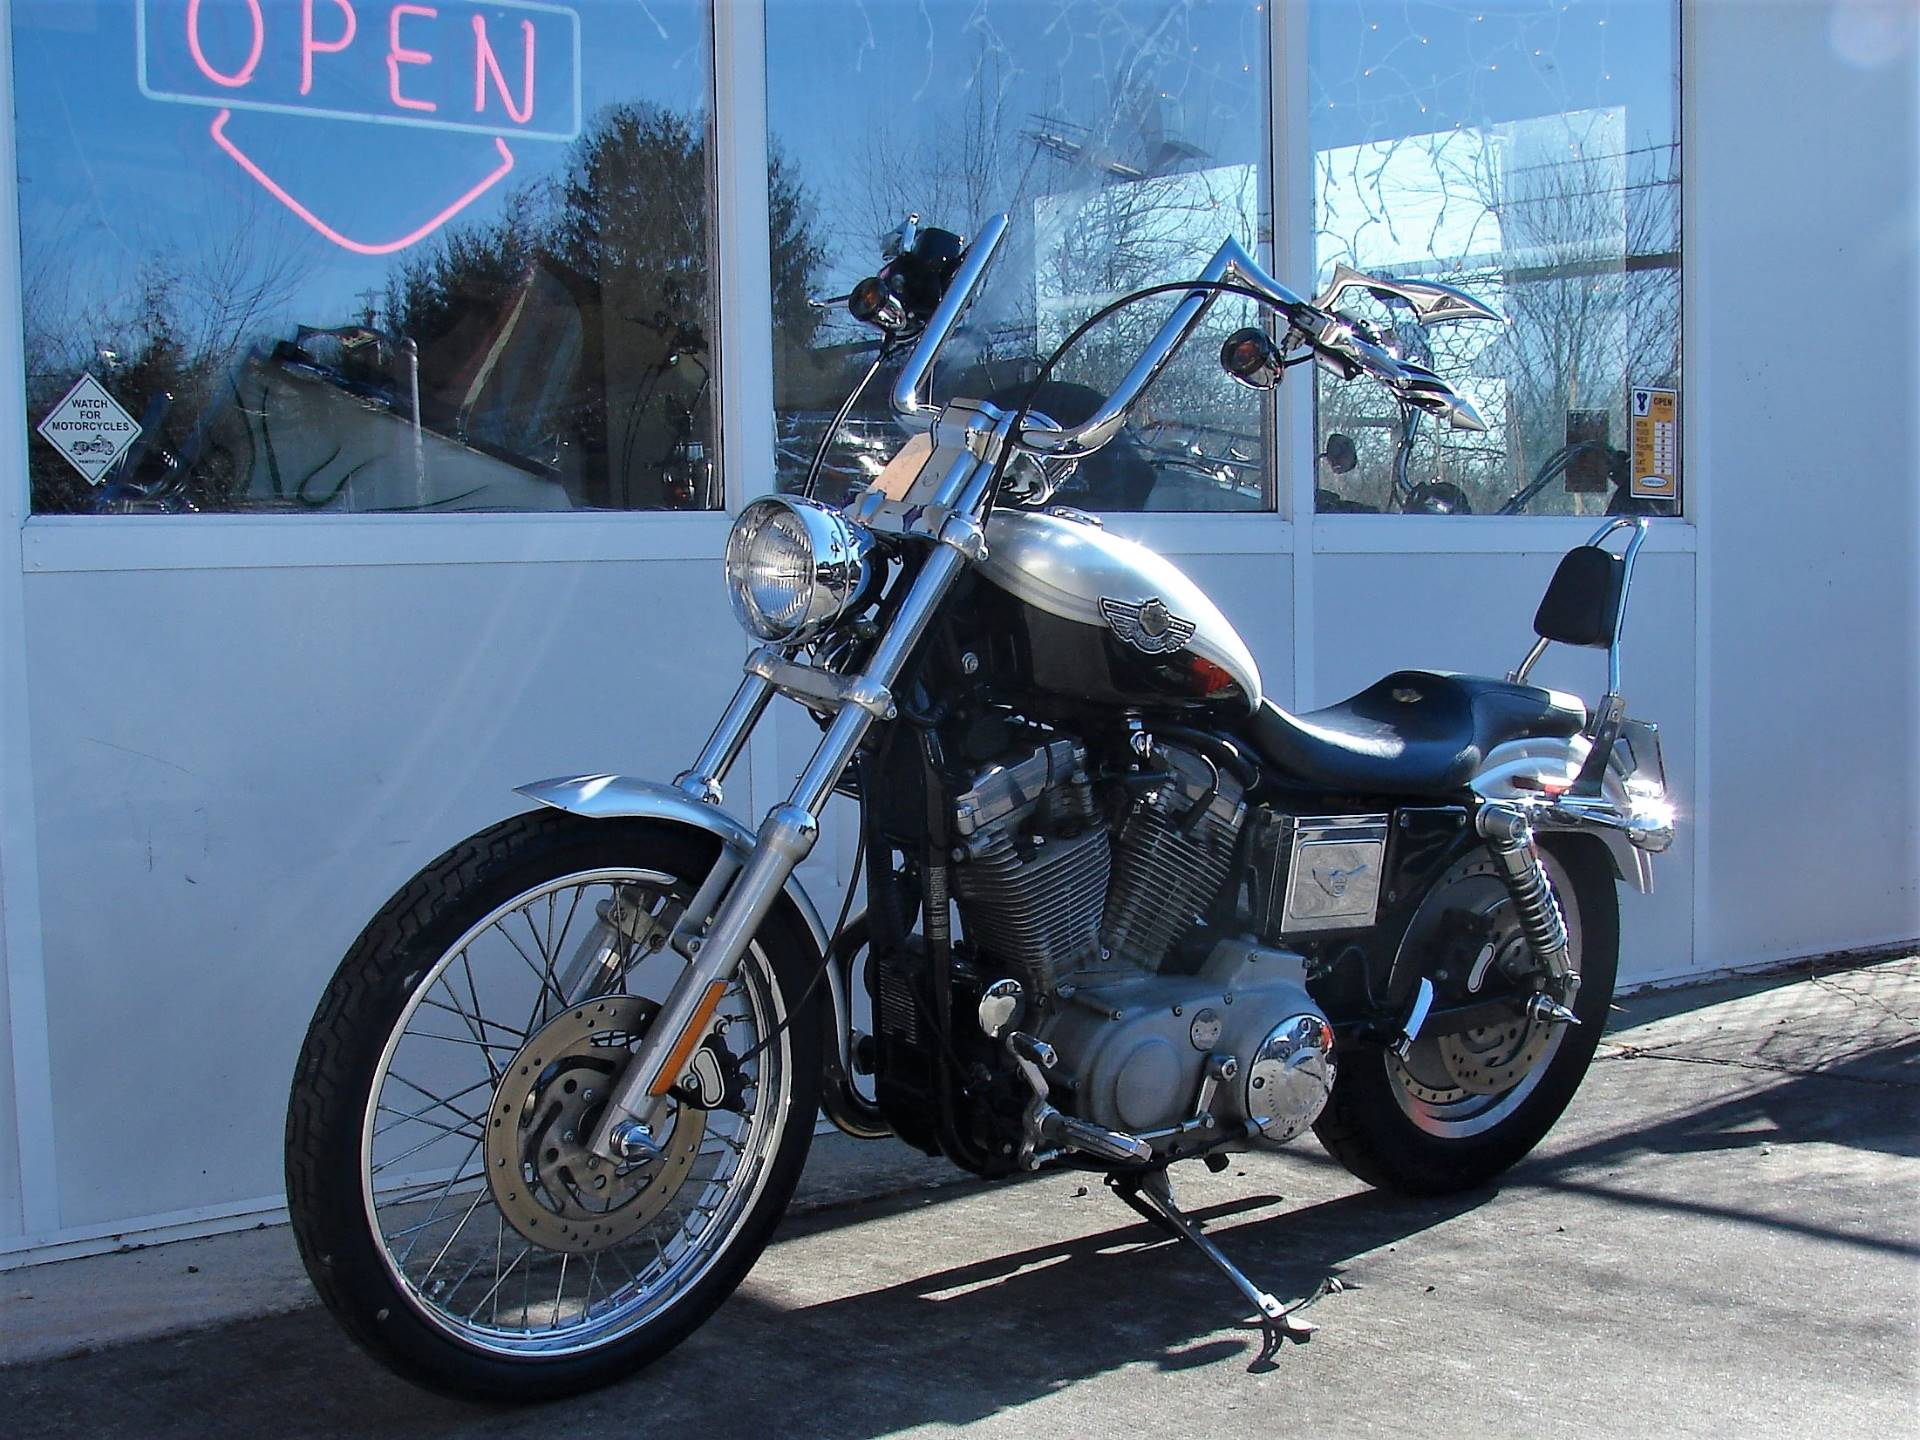 2003 Harley-Davidson XLH 883 Sportster (Anniversary Edition) (Silver & Black) in Williamstown, New Jersey - Photo 8